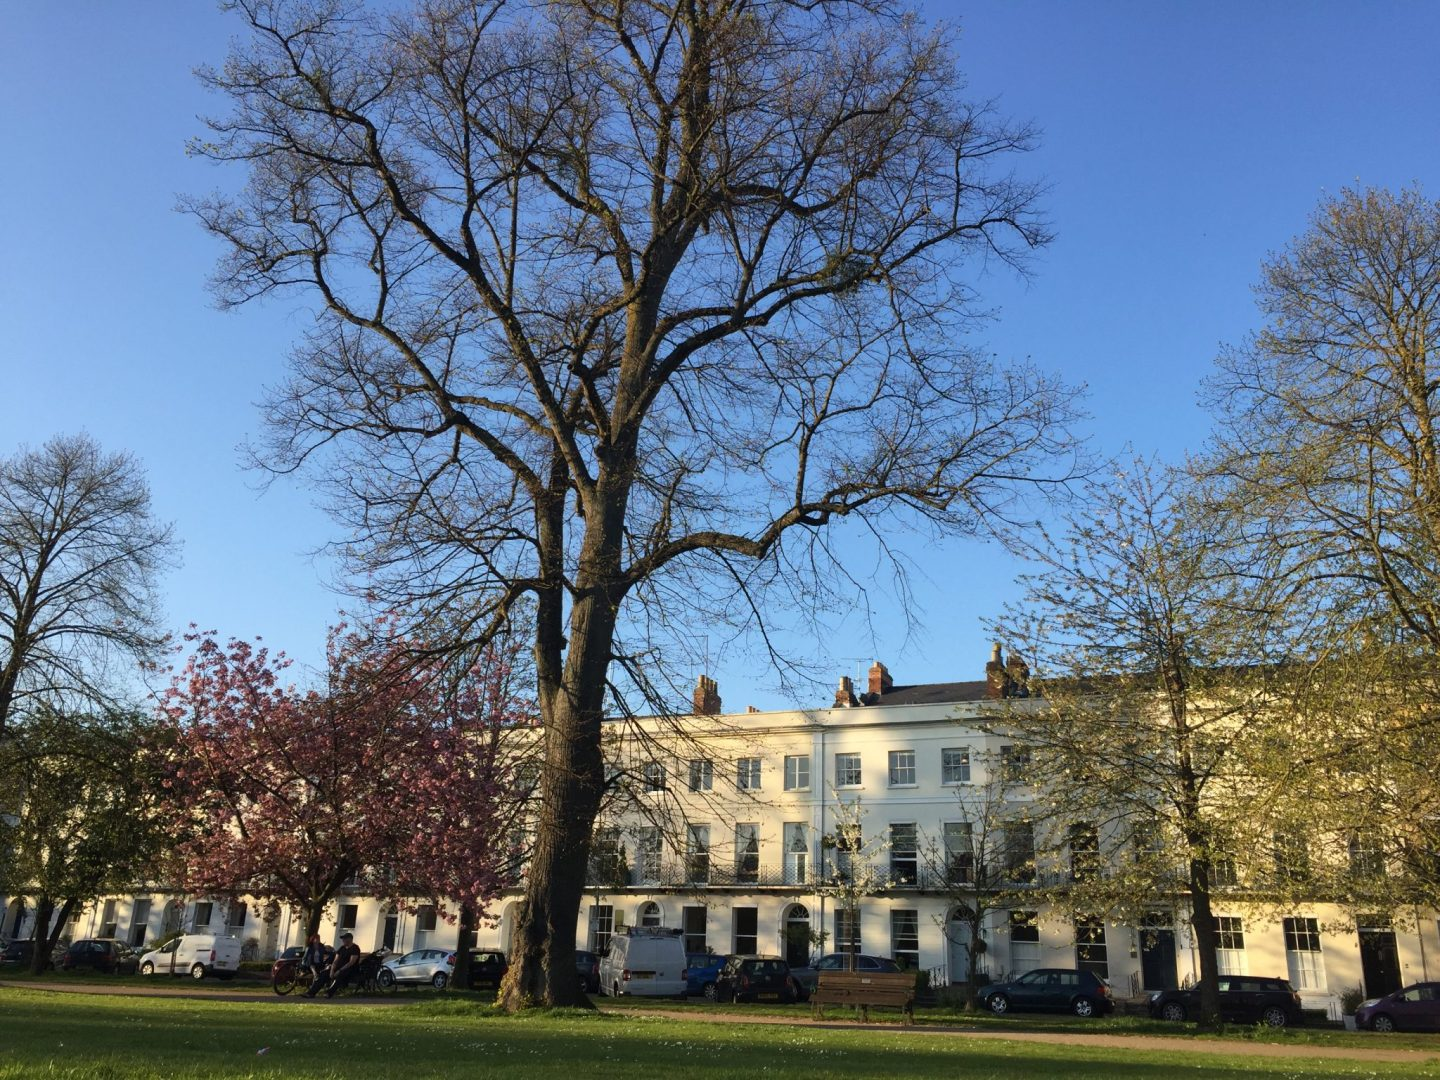 A guide to Cheltenham, Gloucestershire